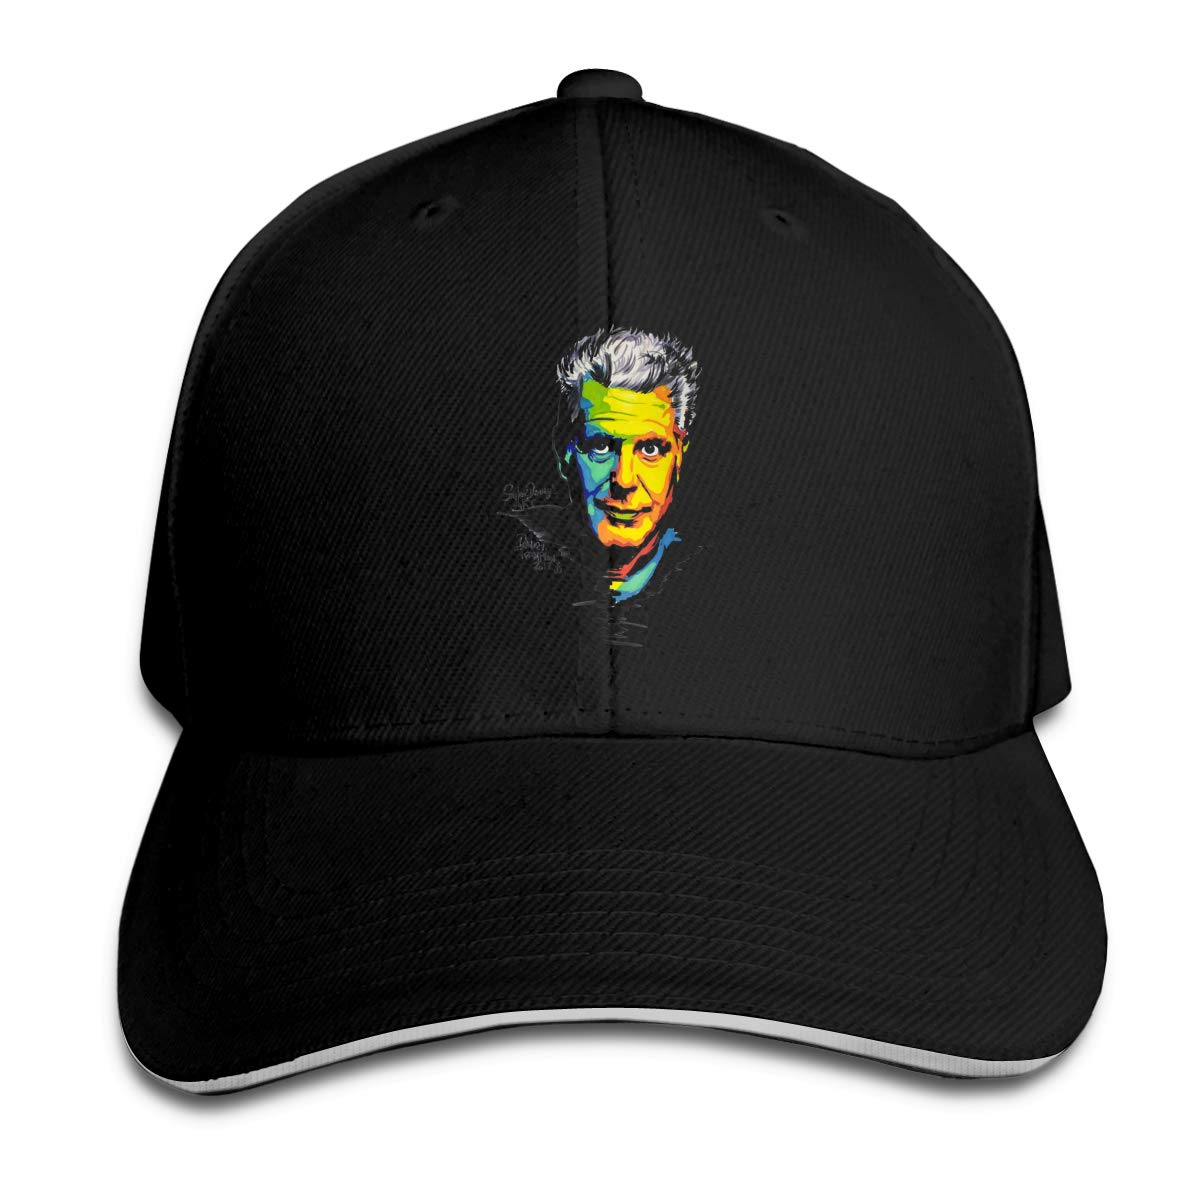 Vintage Anthony Bourdain Adjustable Sports Hats Sun Hat for Men and Women